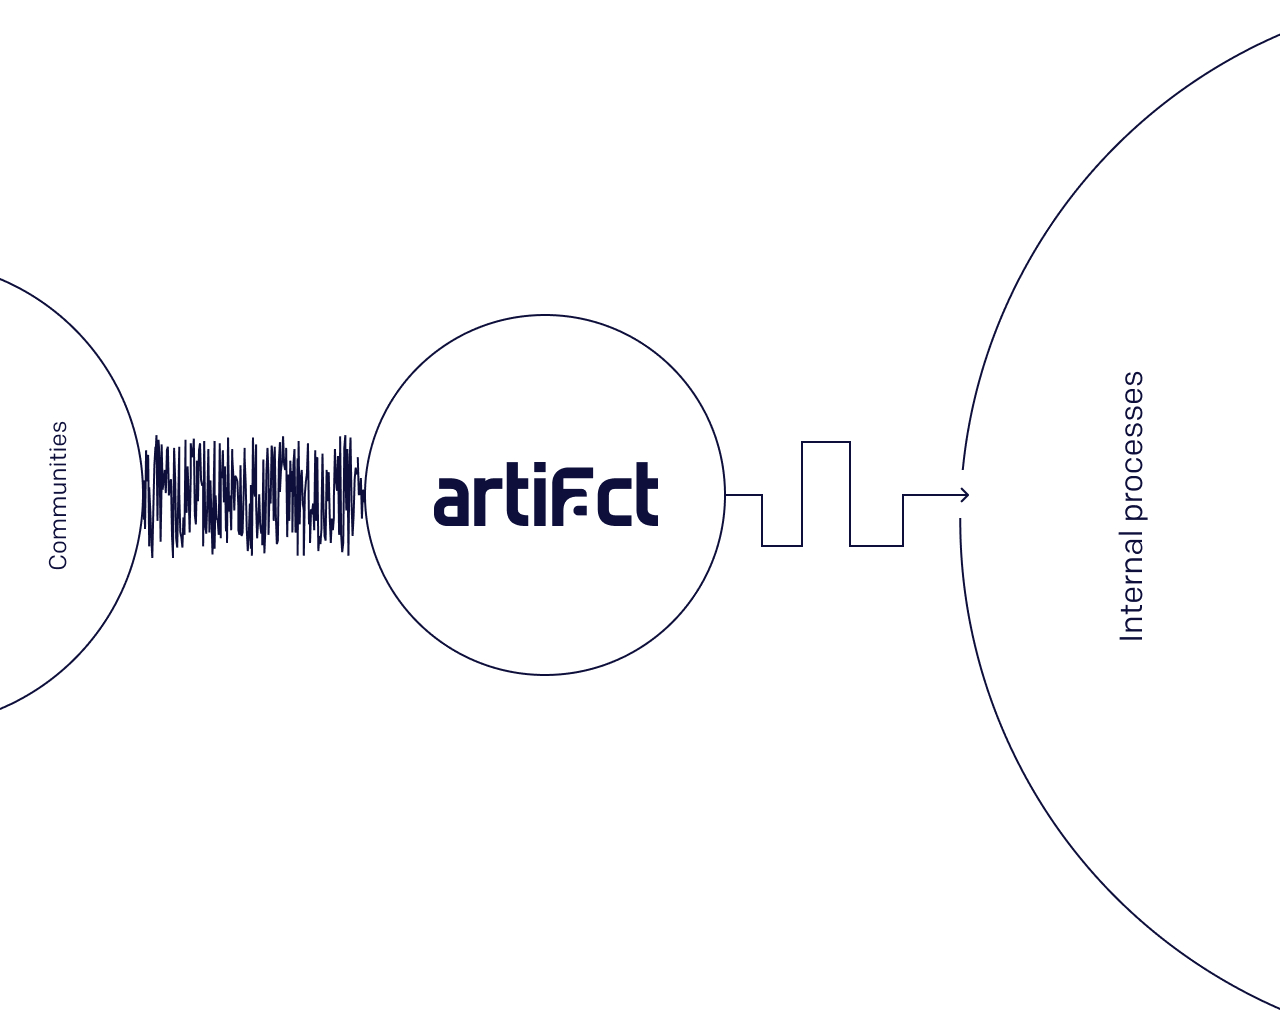 An image depicting how noisy user communities can be, and how Artifact helps teams find a signal in all the noisy chatter.